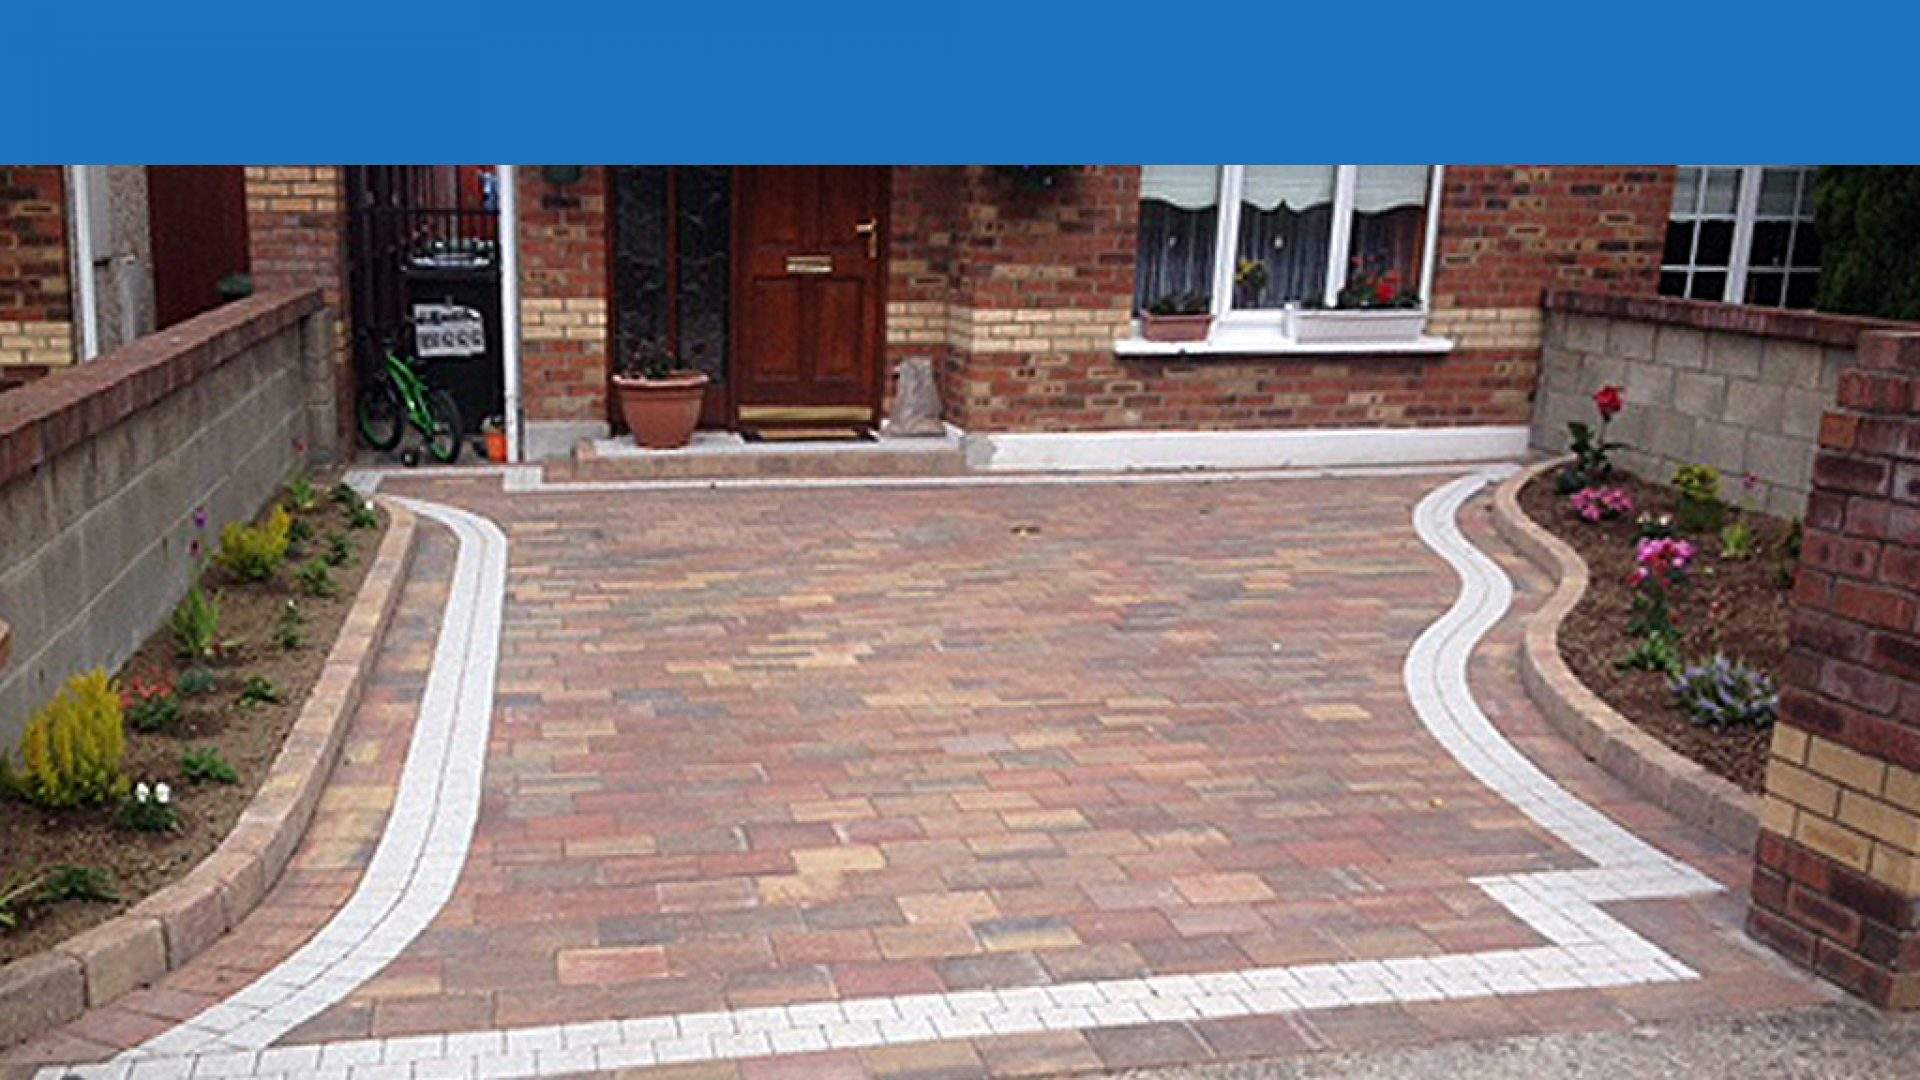 Paving Contractors Dublin, Tarmac Dublin, Paving Dublin – Driveways 4 You